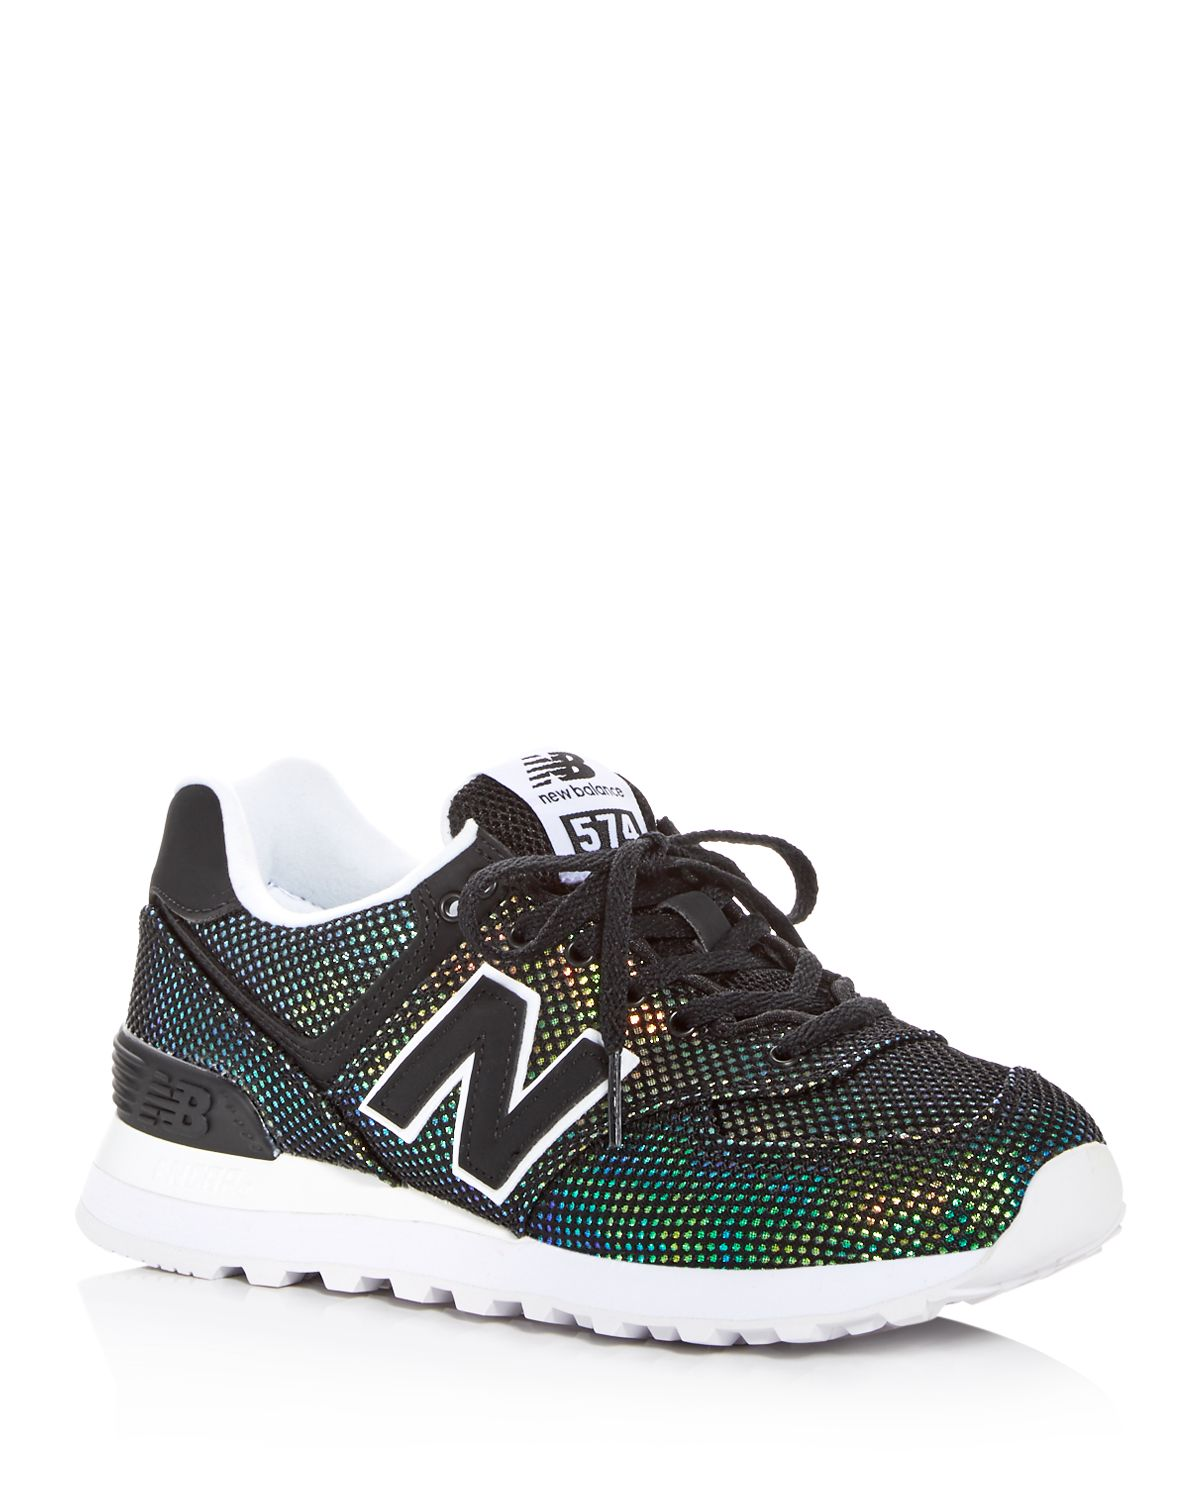 Women's 574 Mermaid Classic Lace Up Sneakers by New Balance